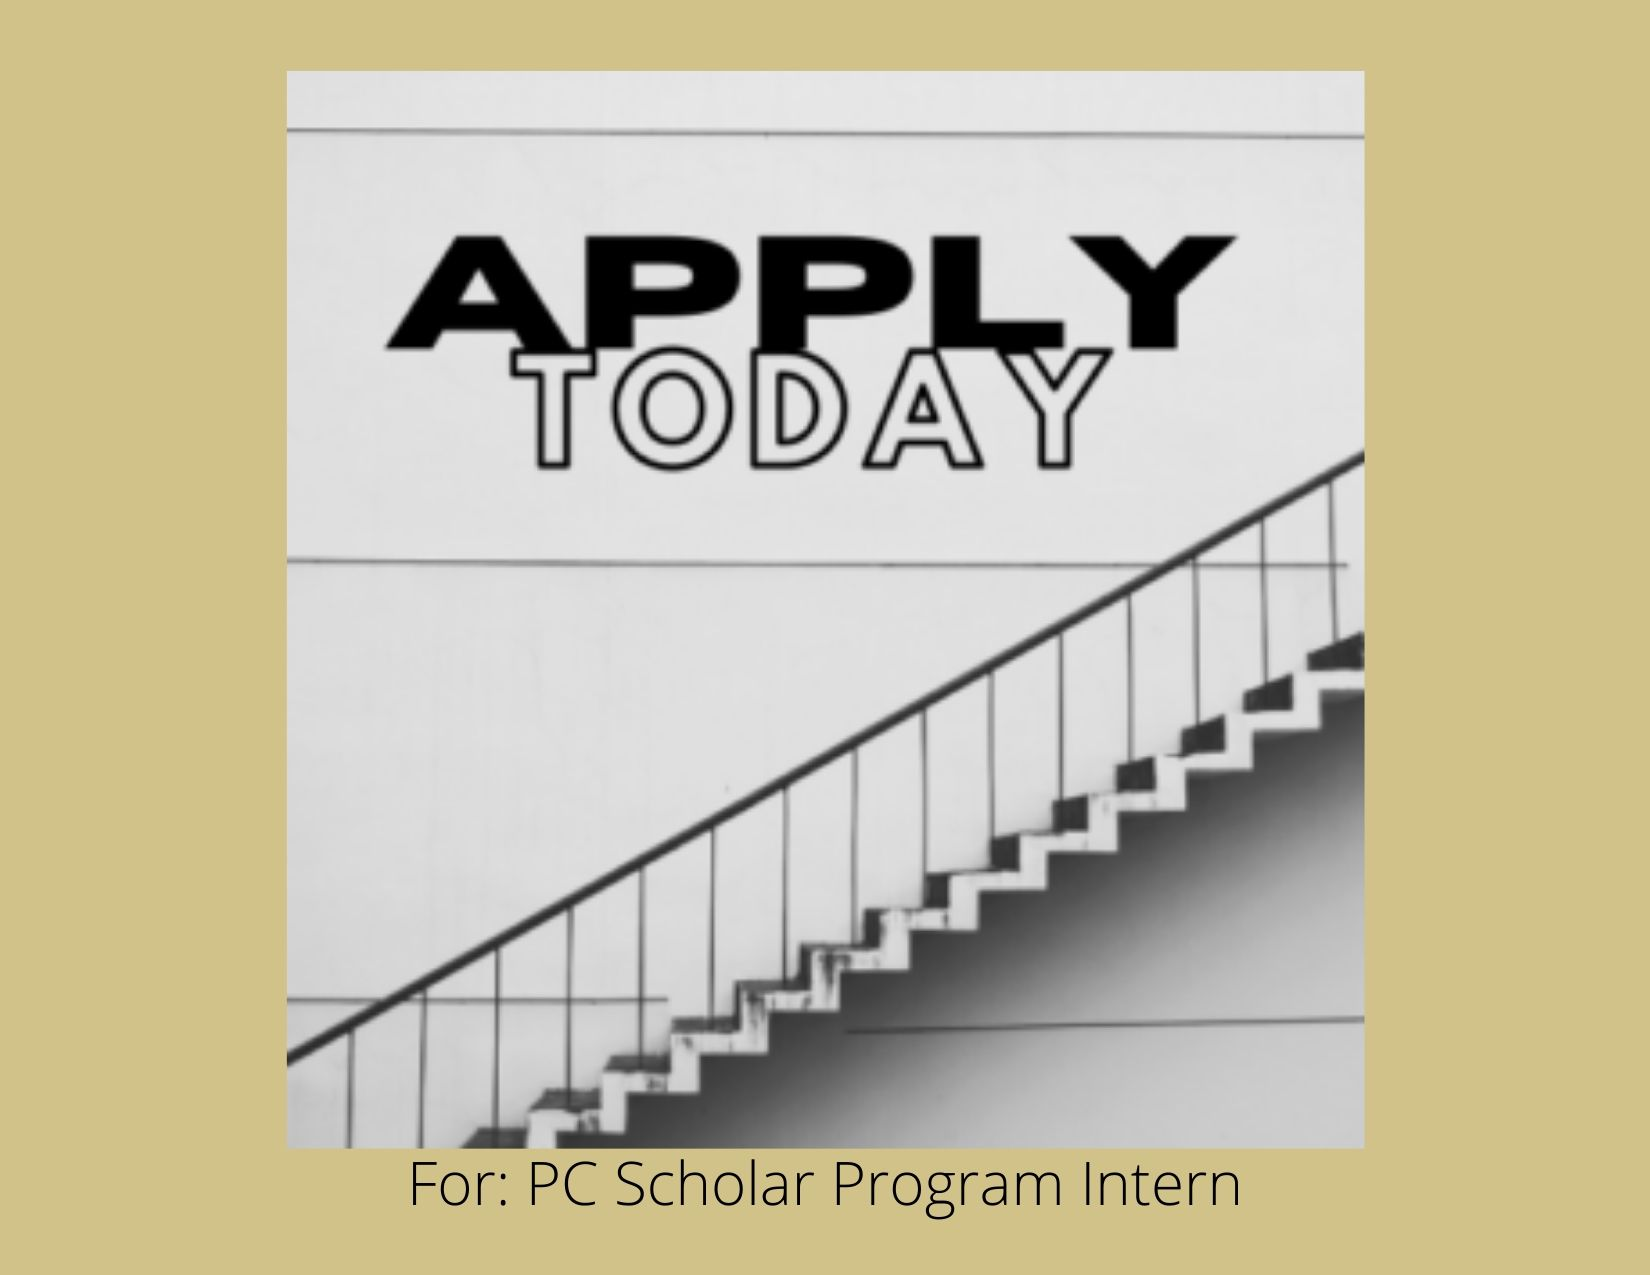 WE'RE HIRING! PC SCHOLARS INTERN 2020